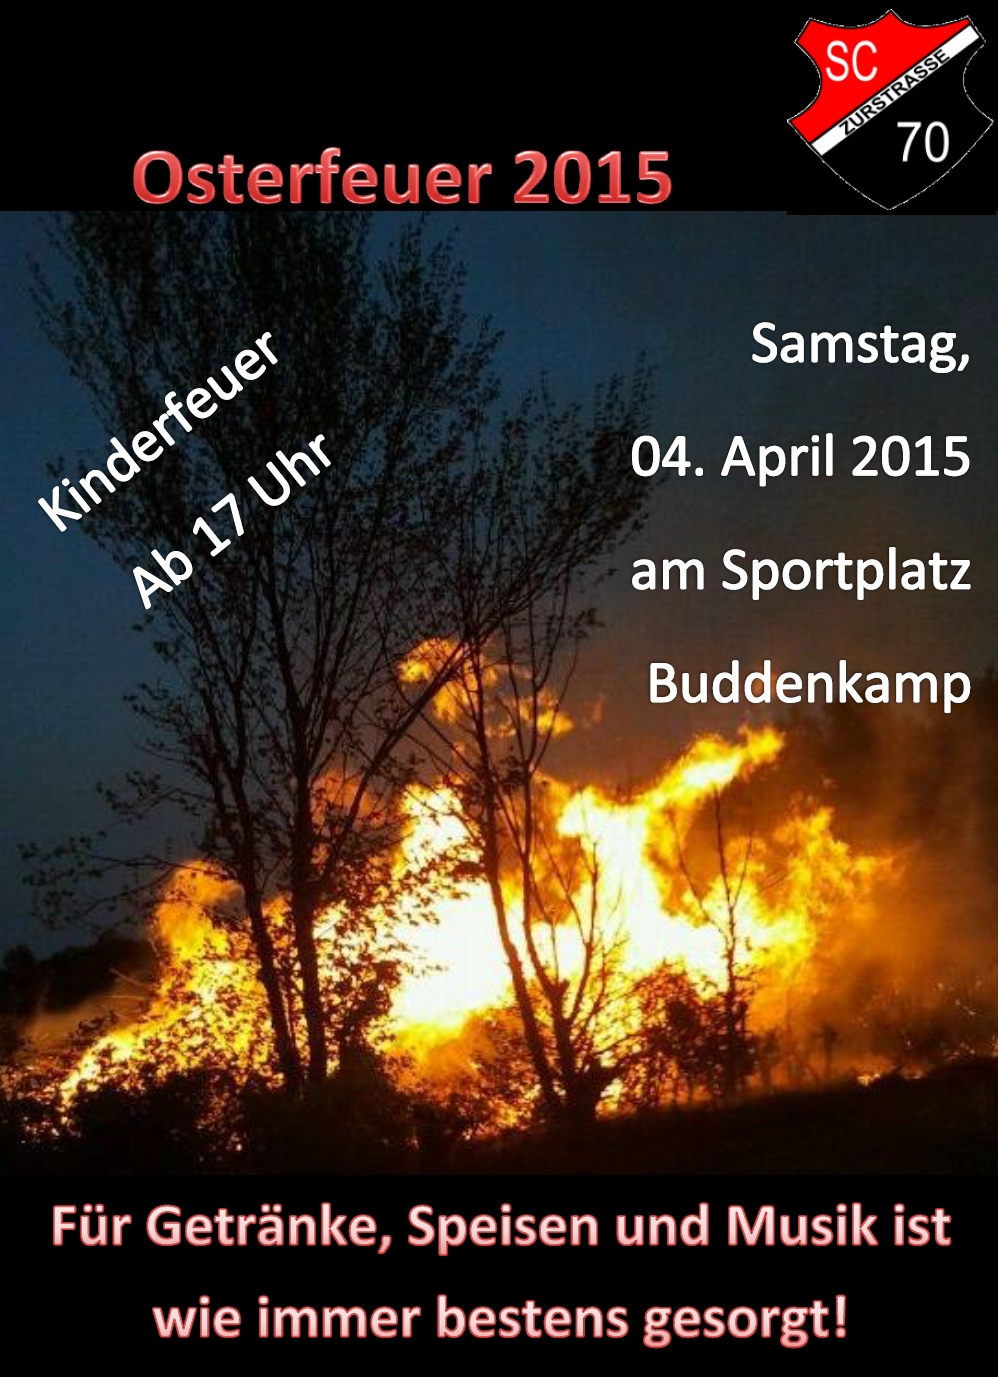 2015 Osterfeuer